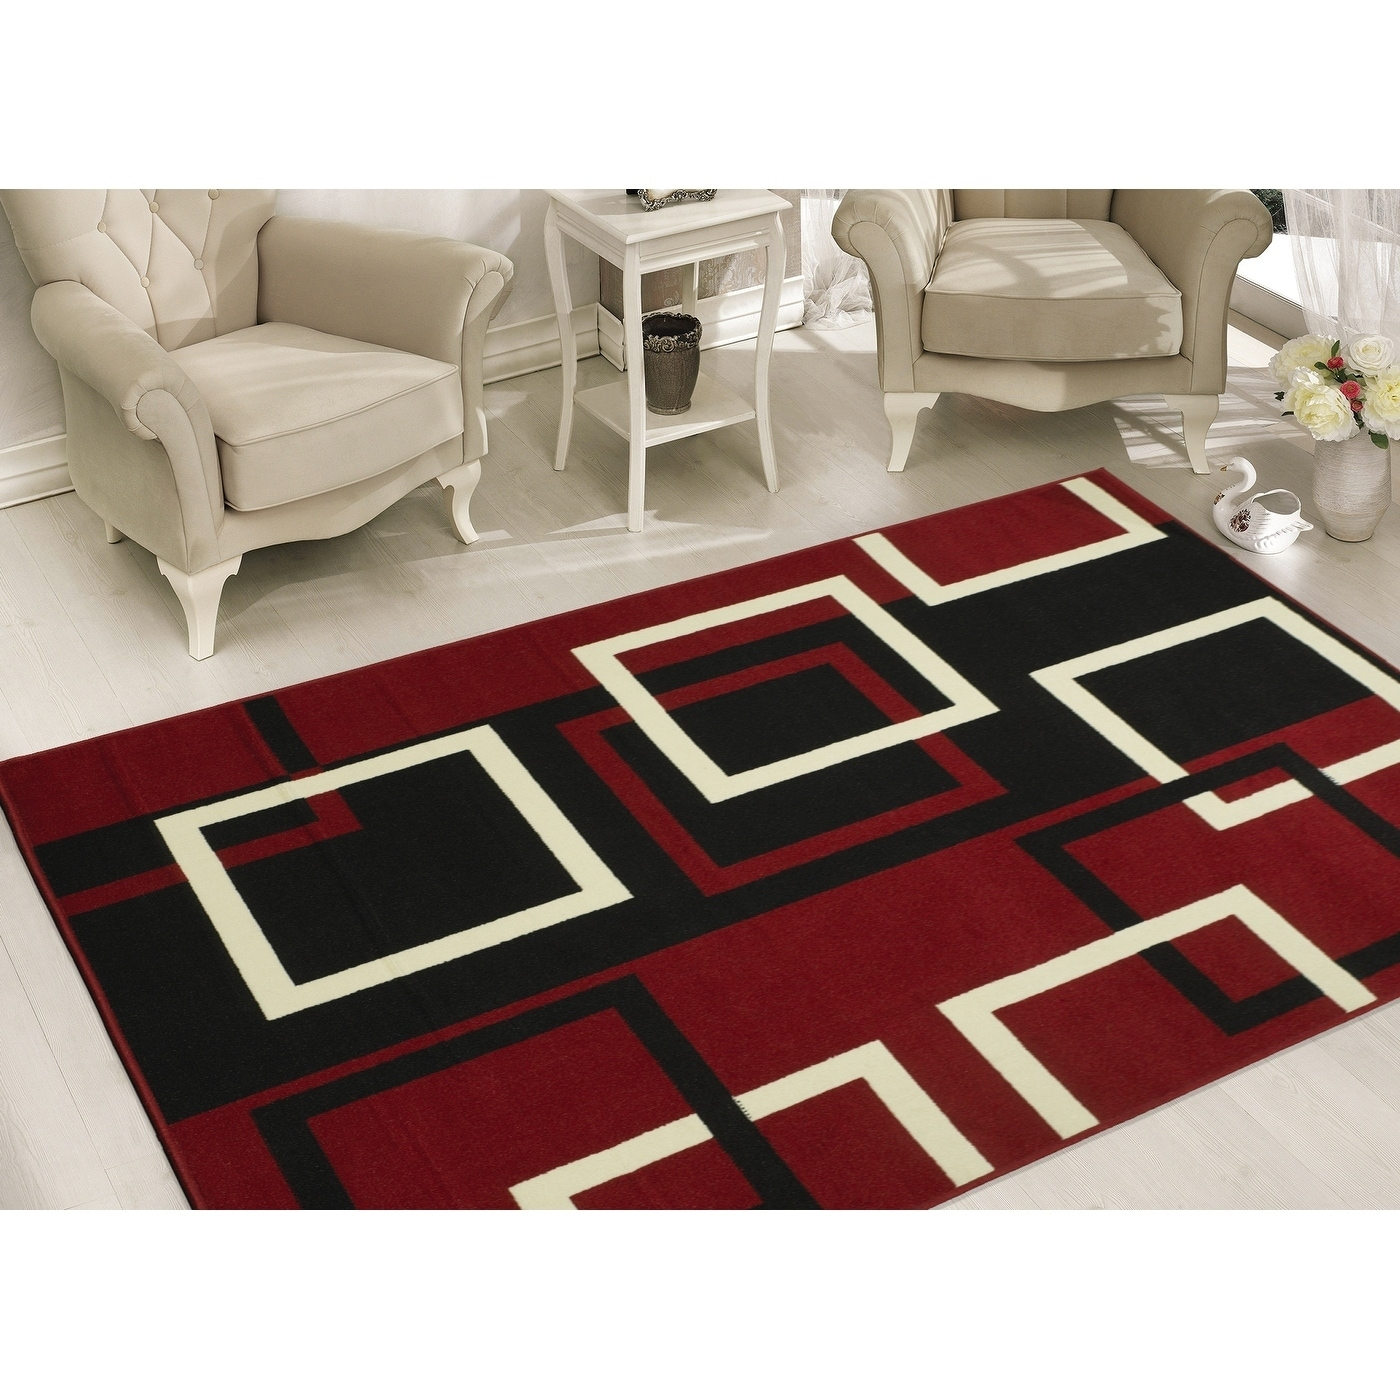 rug feather brown listing stores isearchbiz centre business directory online searchresultcate